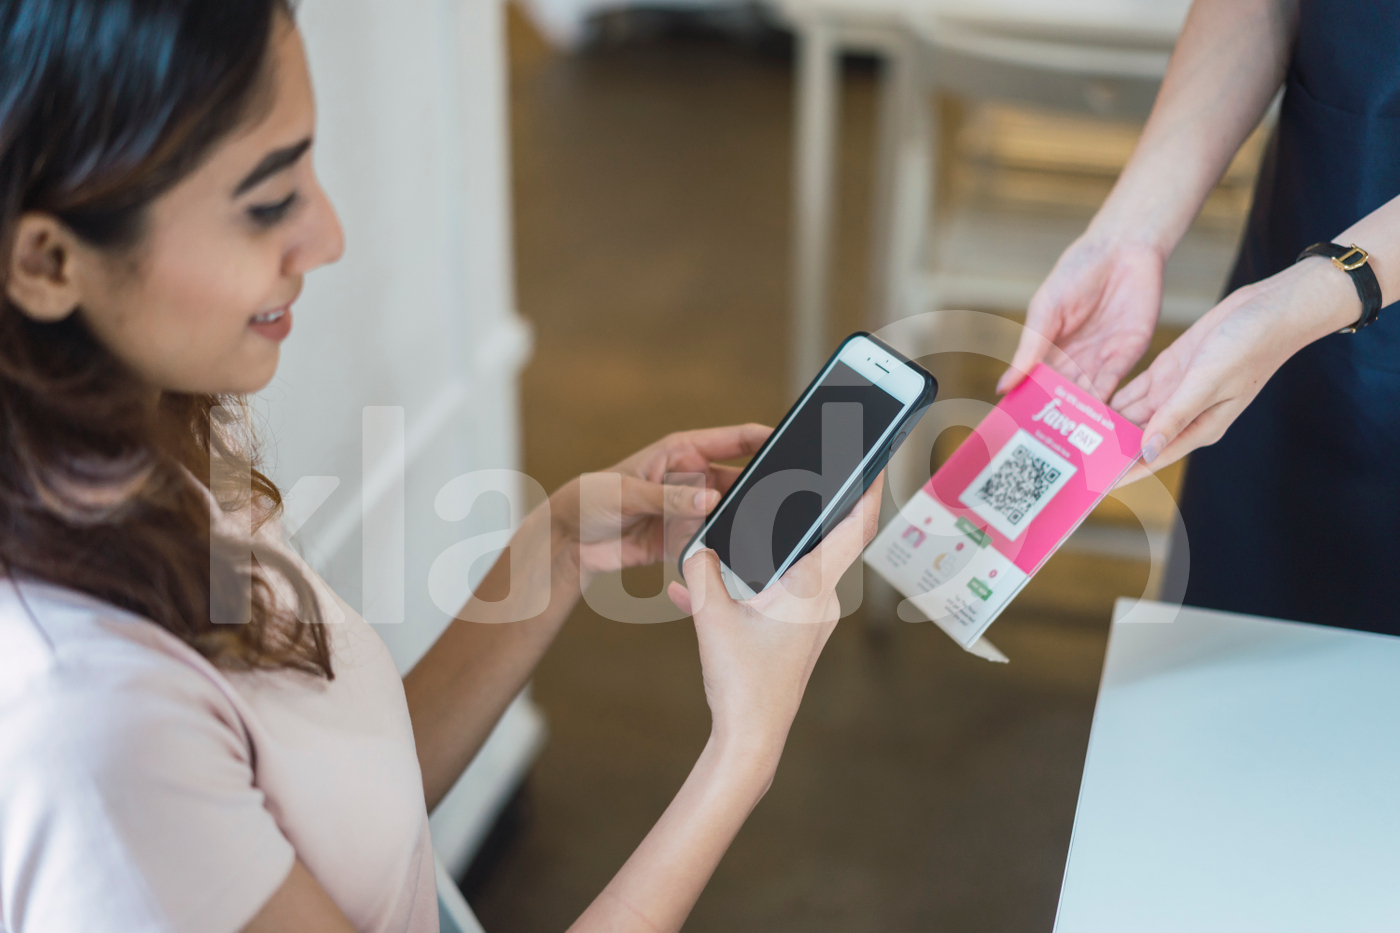 Young Asian woman scanning QR code at table